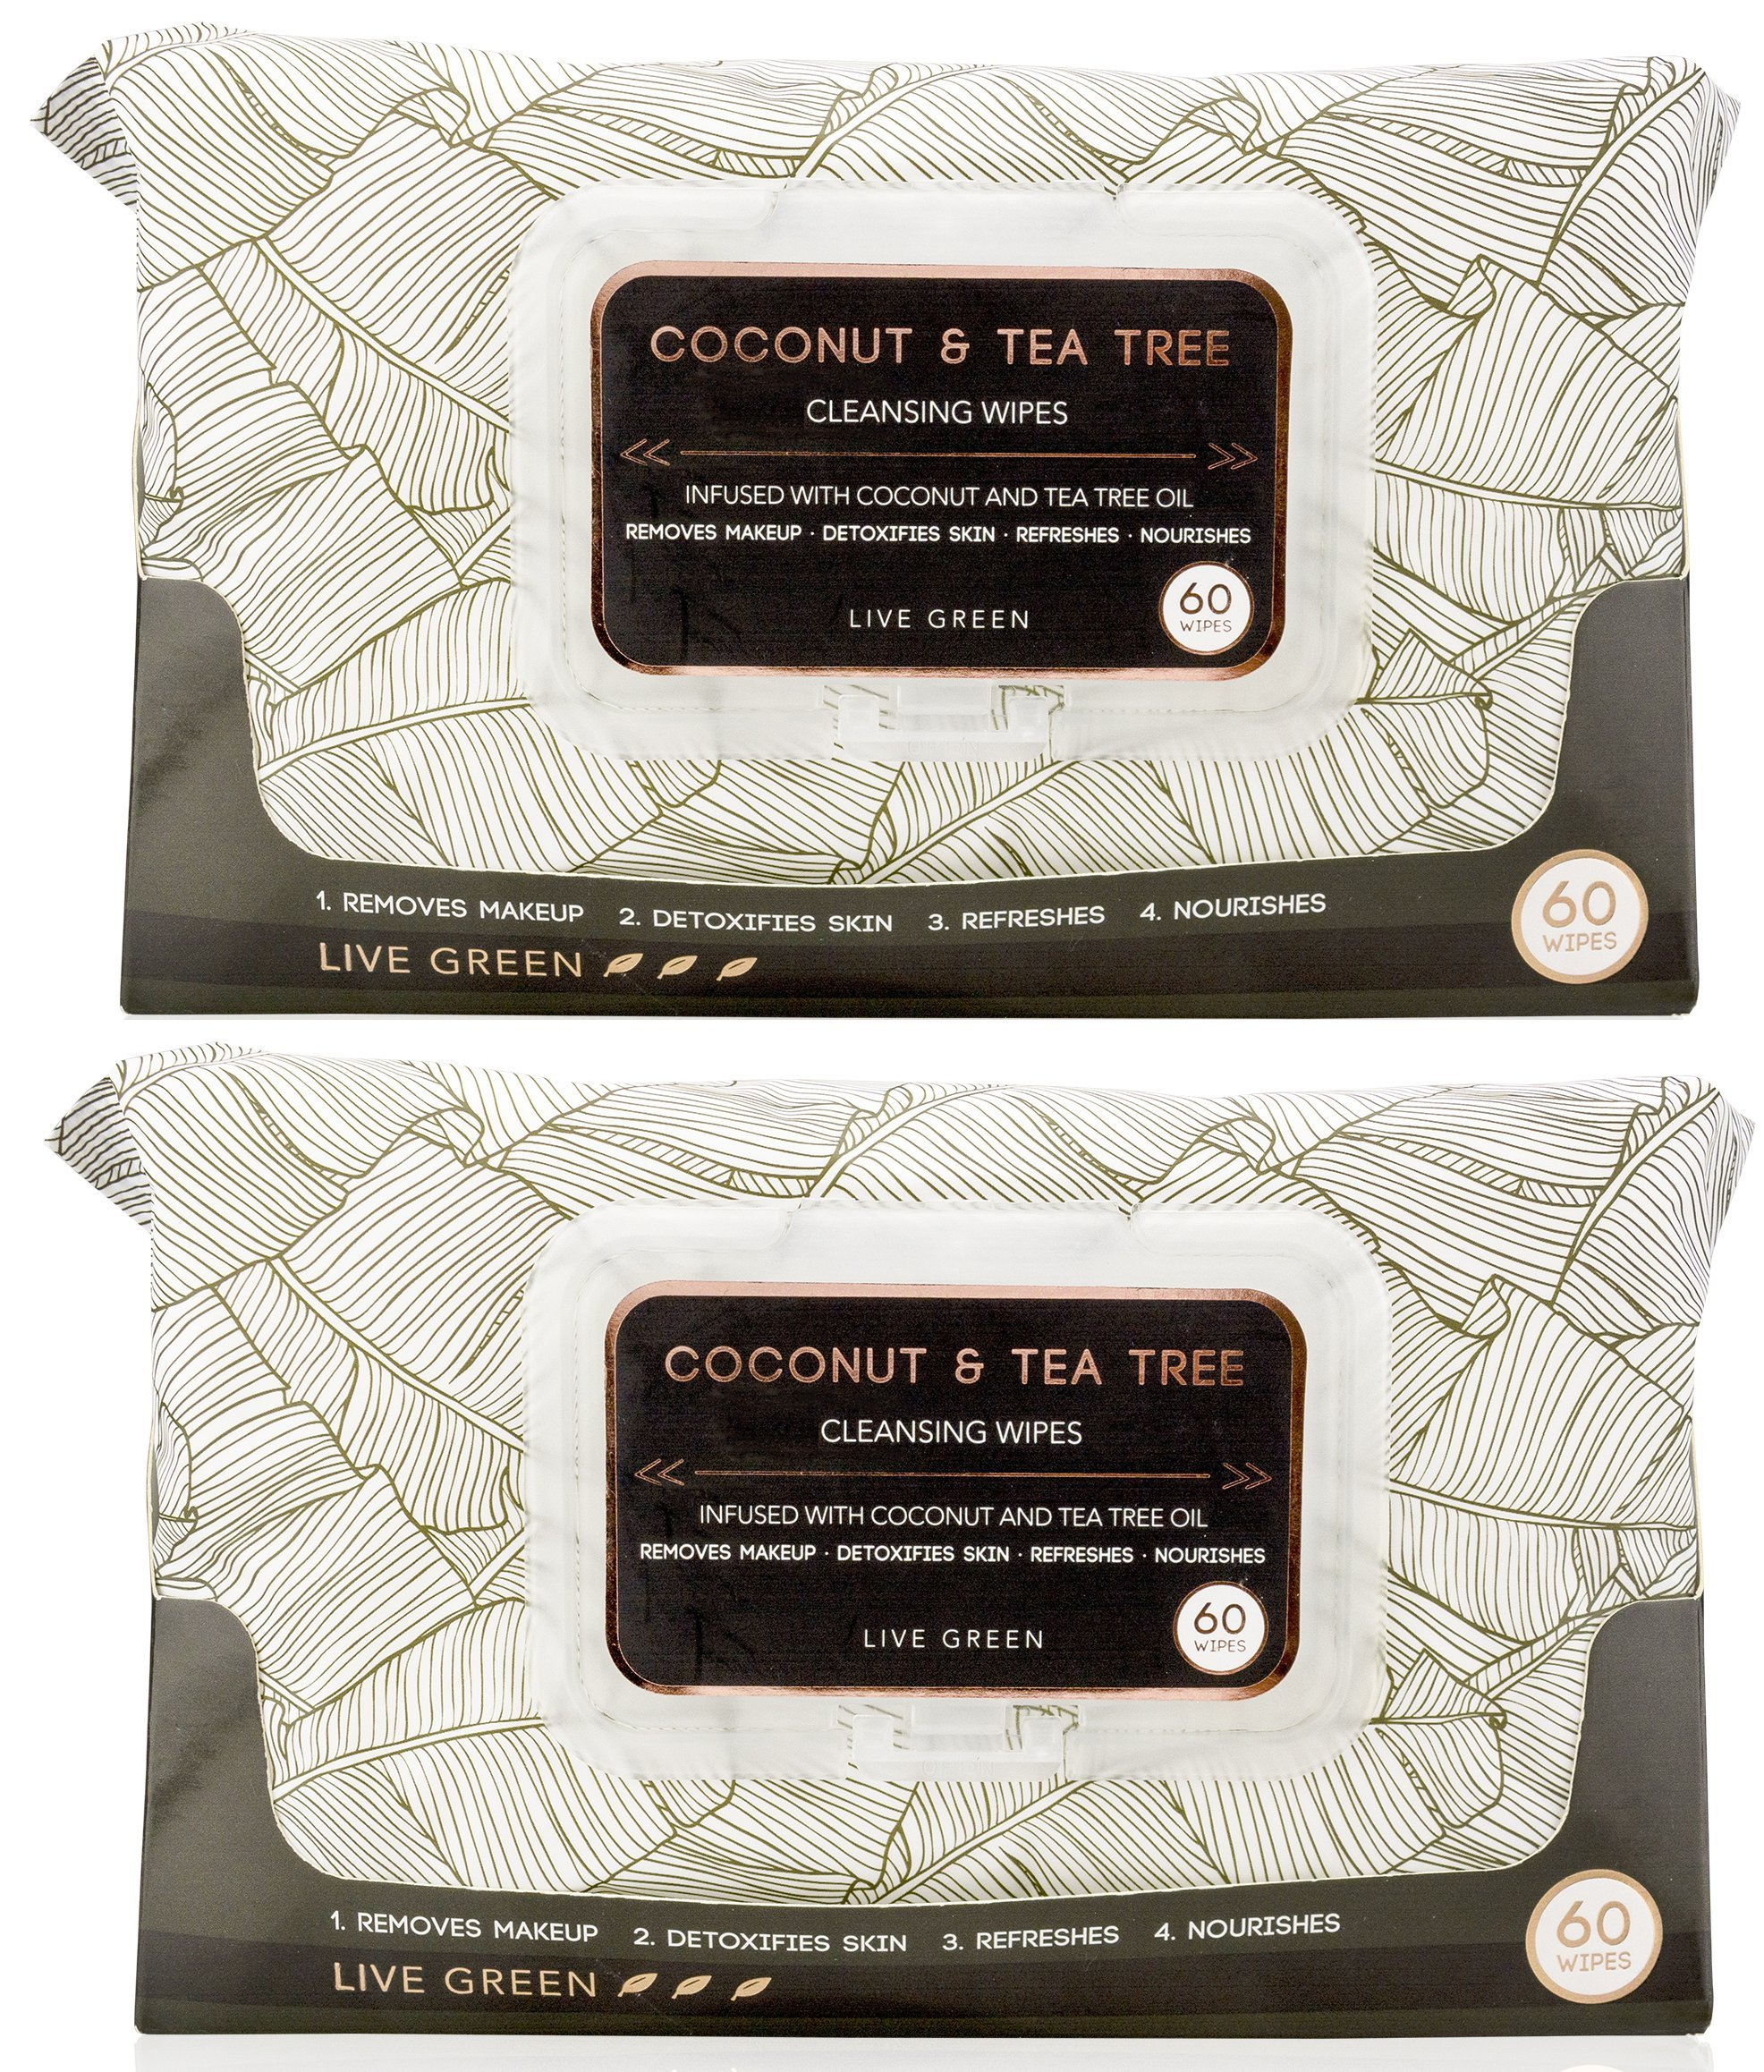 Live Green Live Green - 2 Pack (60 Count Each) Coconut and Tea Tree Oil Cleansing Wipes